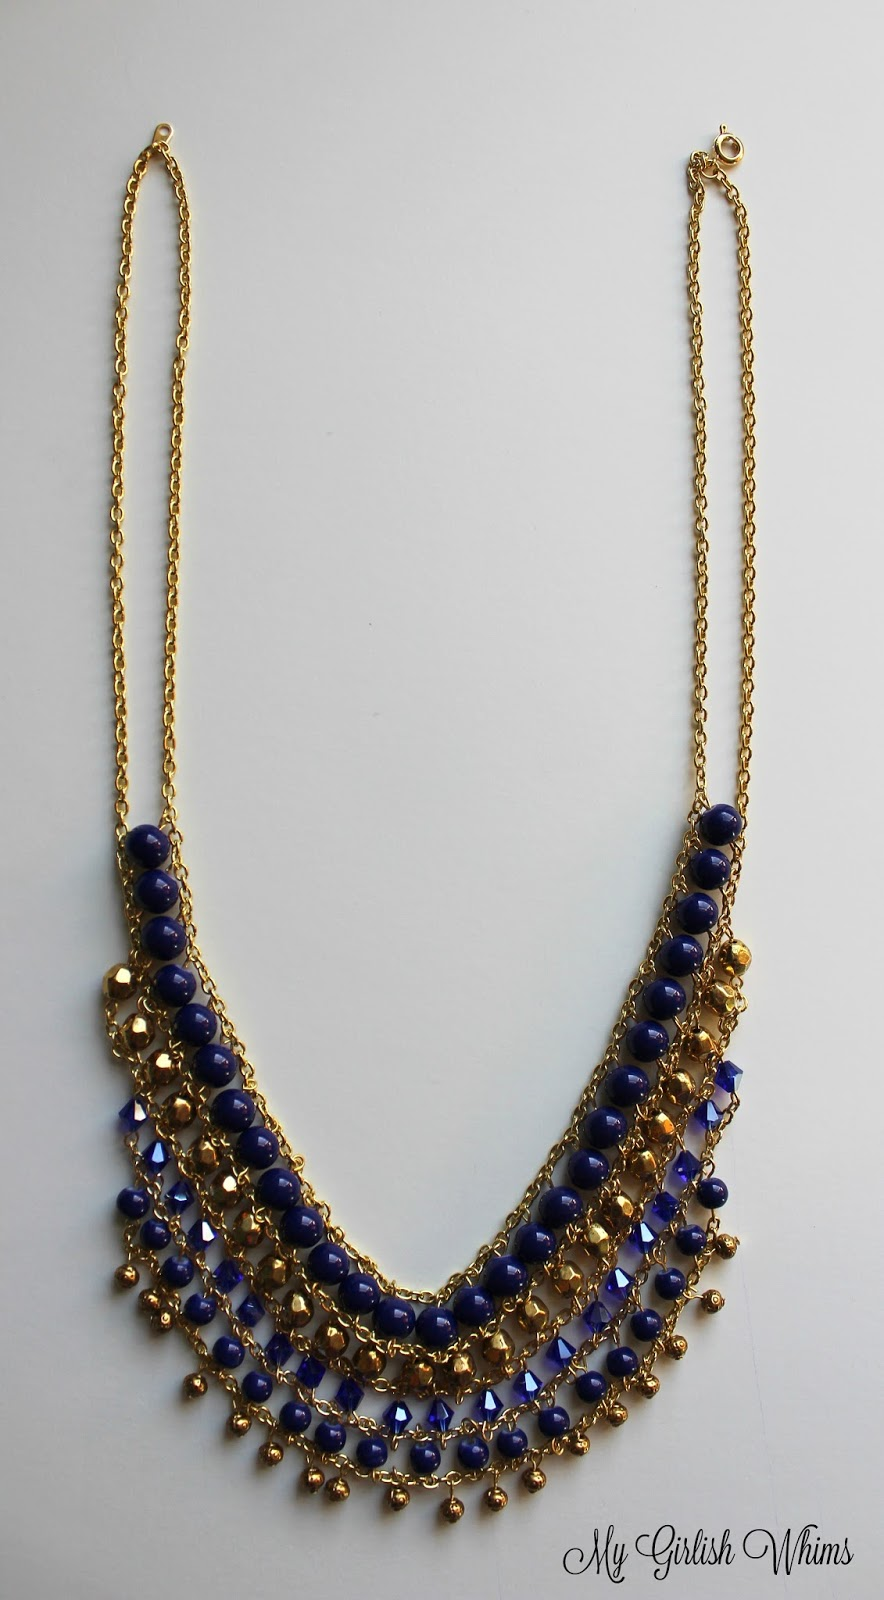 How to Make a Statement Necklace - My Girlish Whims